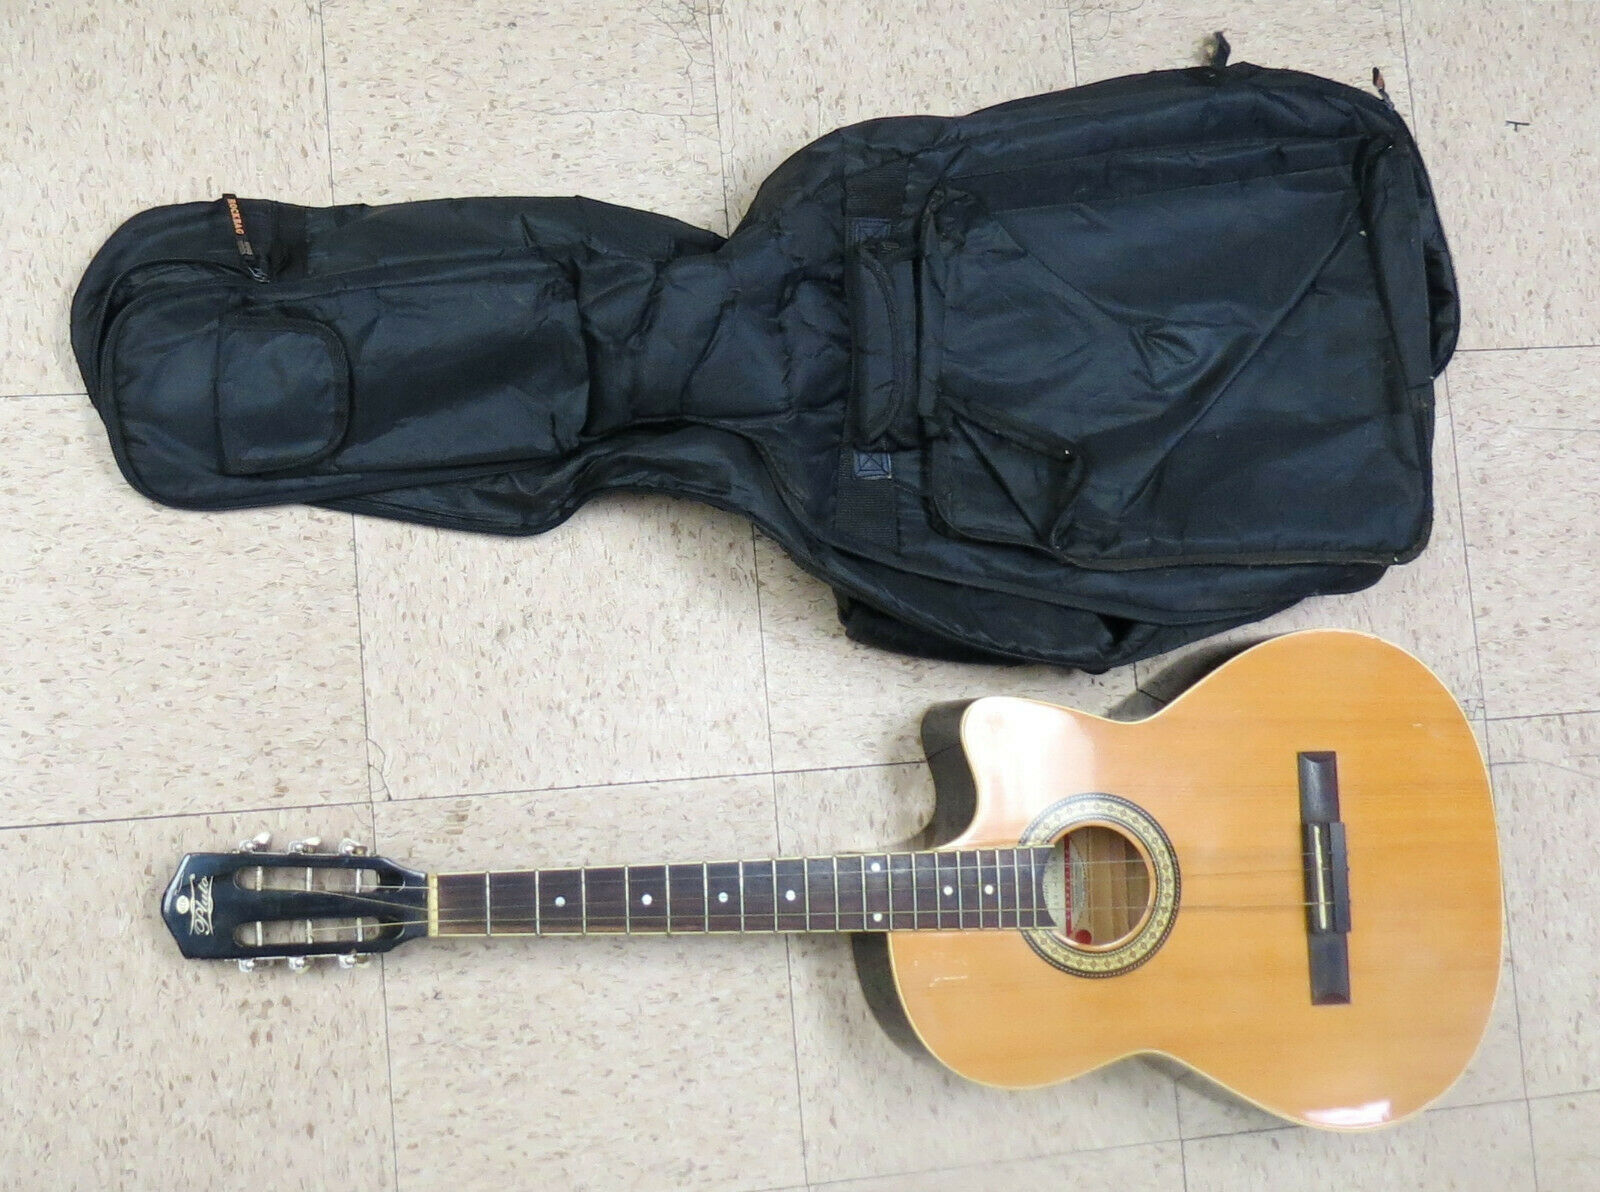 Pluto Guitar Acoustic HW39C-201N with gig bag for sale